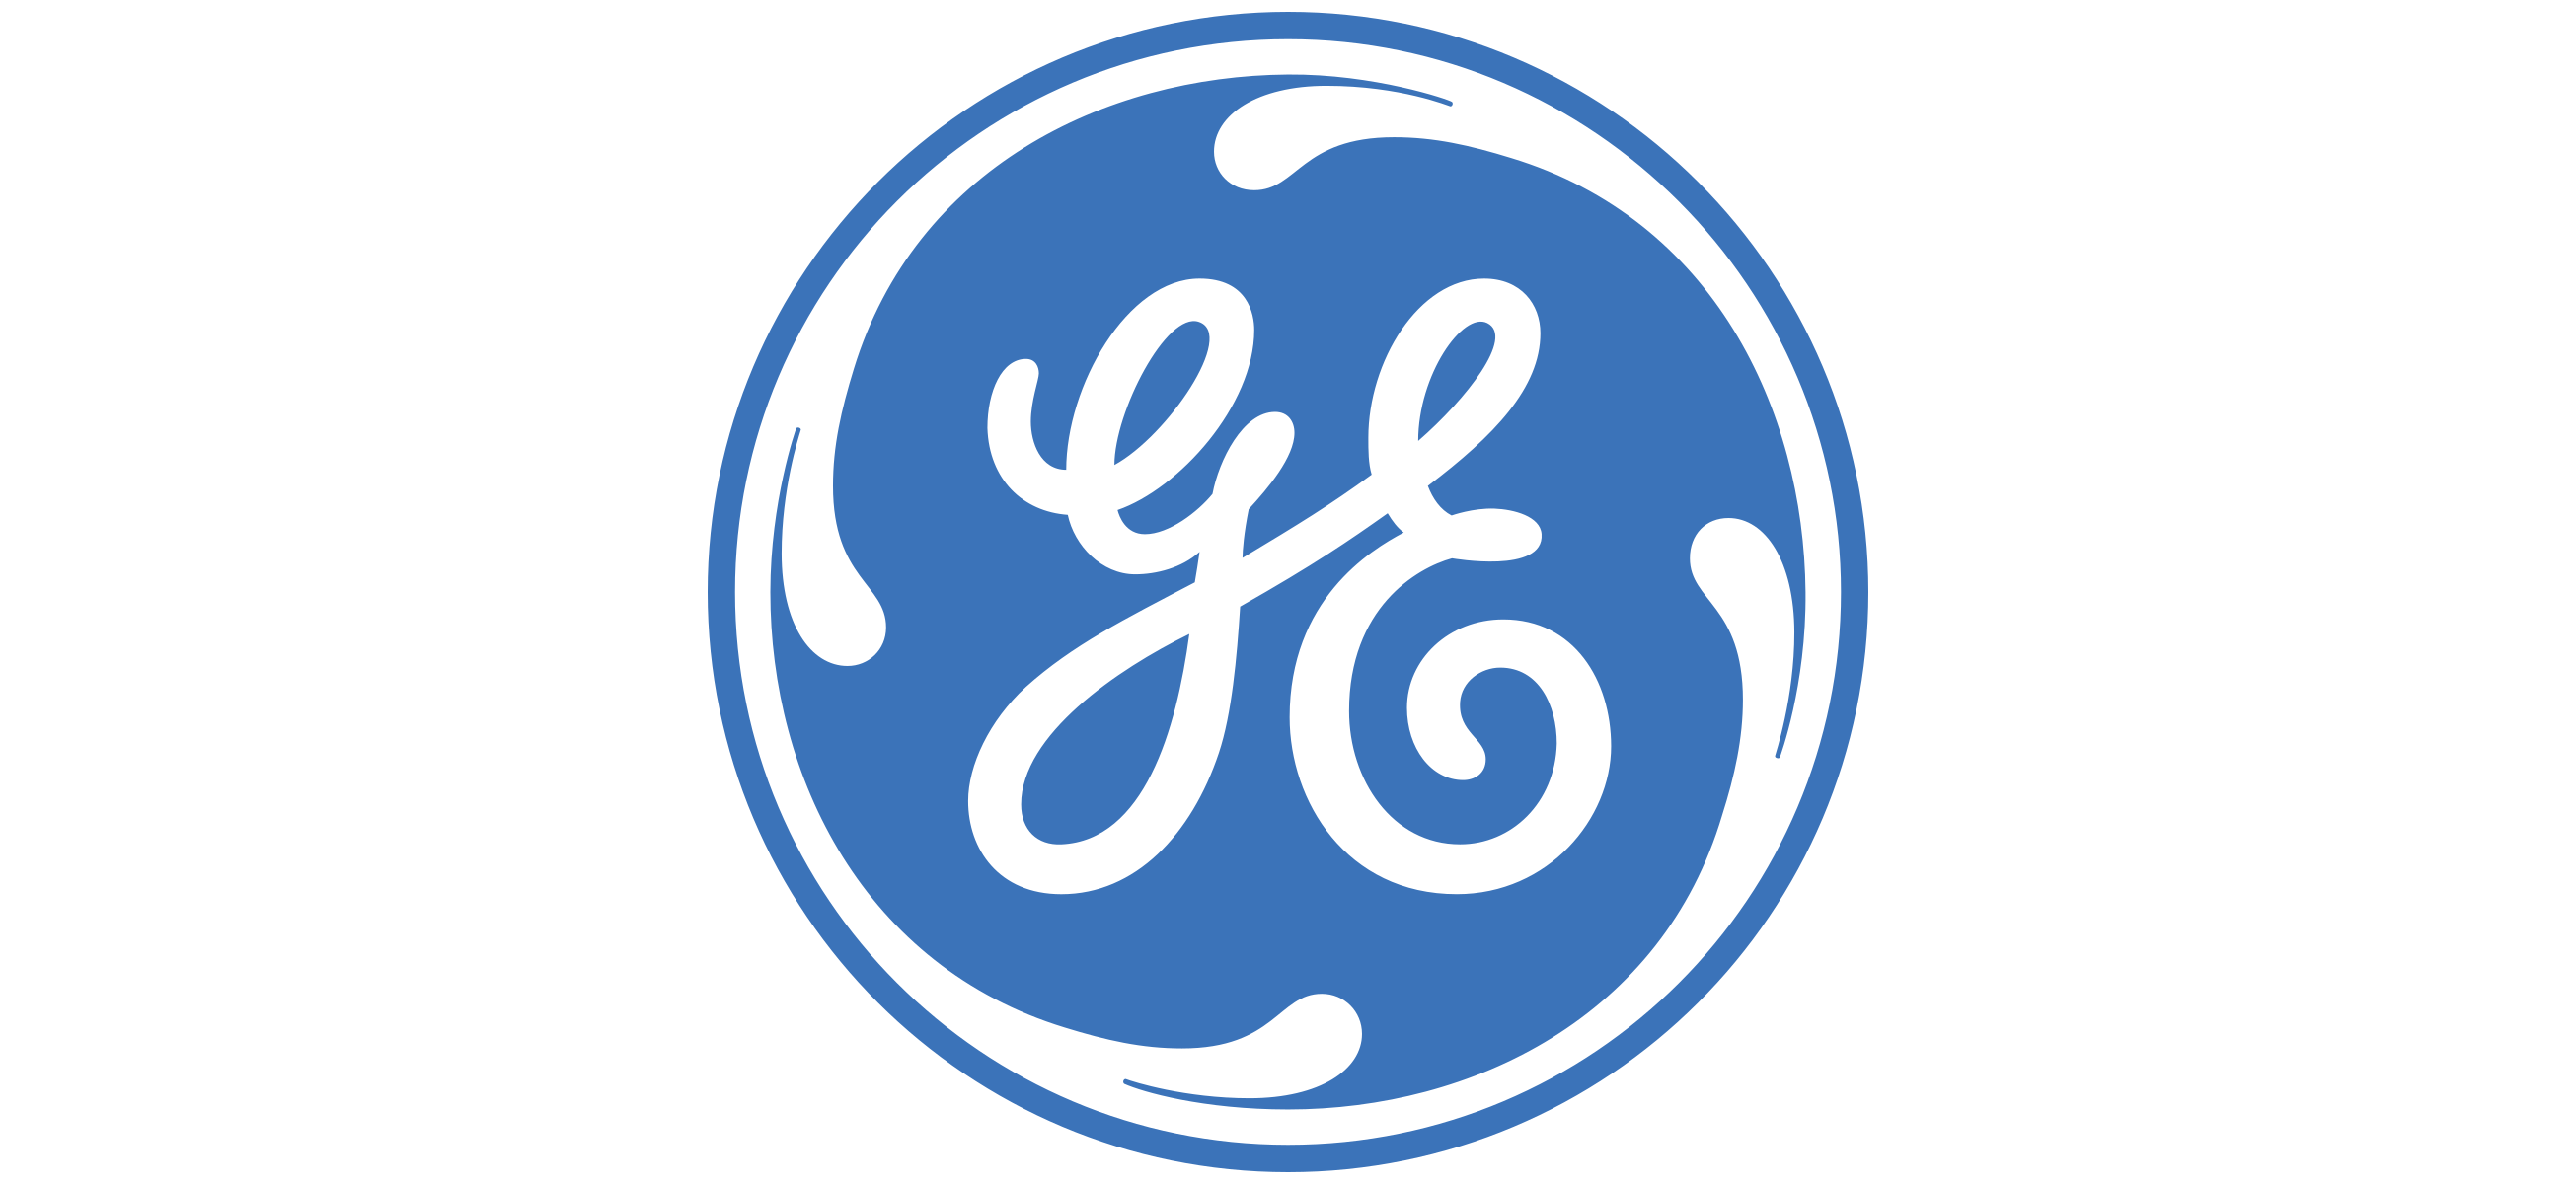 General Electric Horizonal